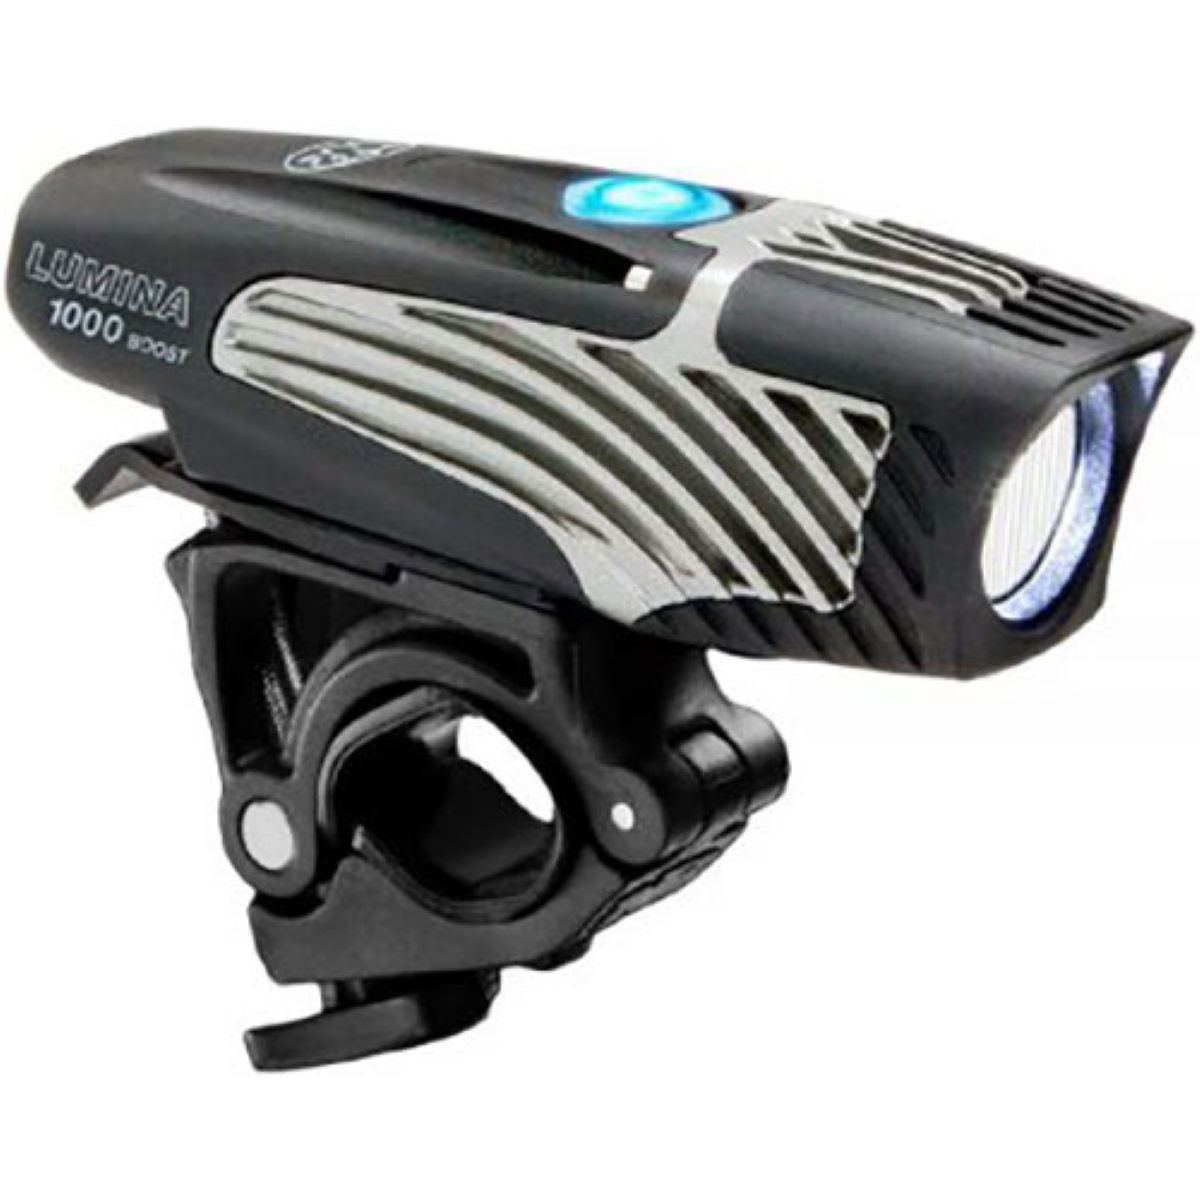 NiteRider Lumina 1000 Boost Front Light - Luces delanteras